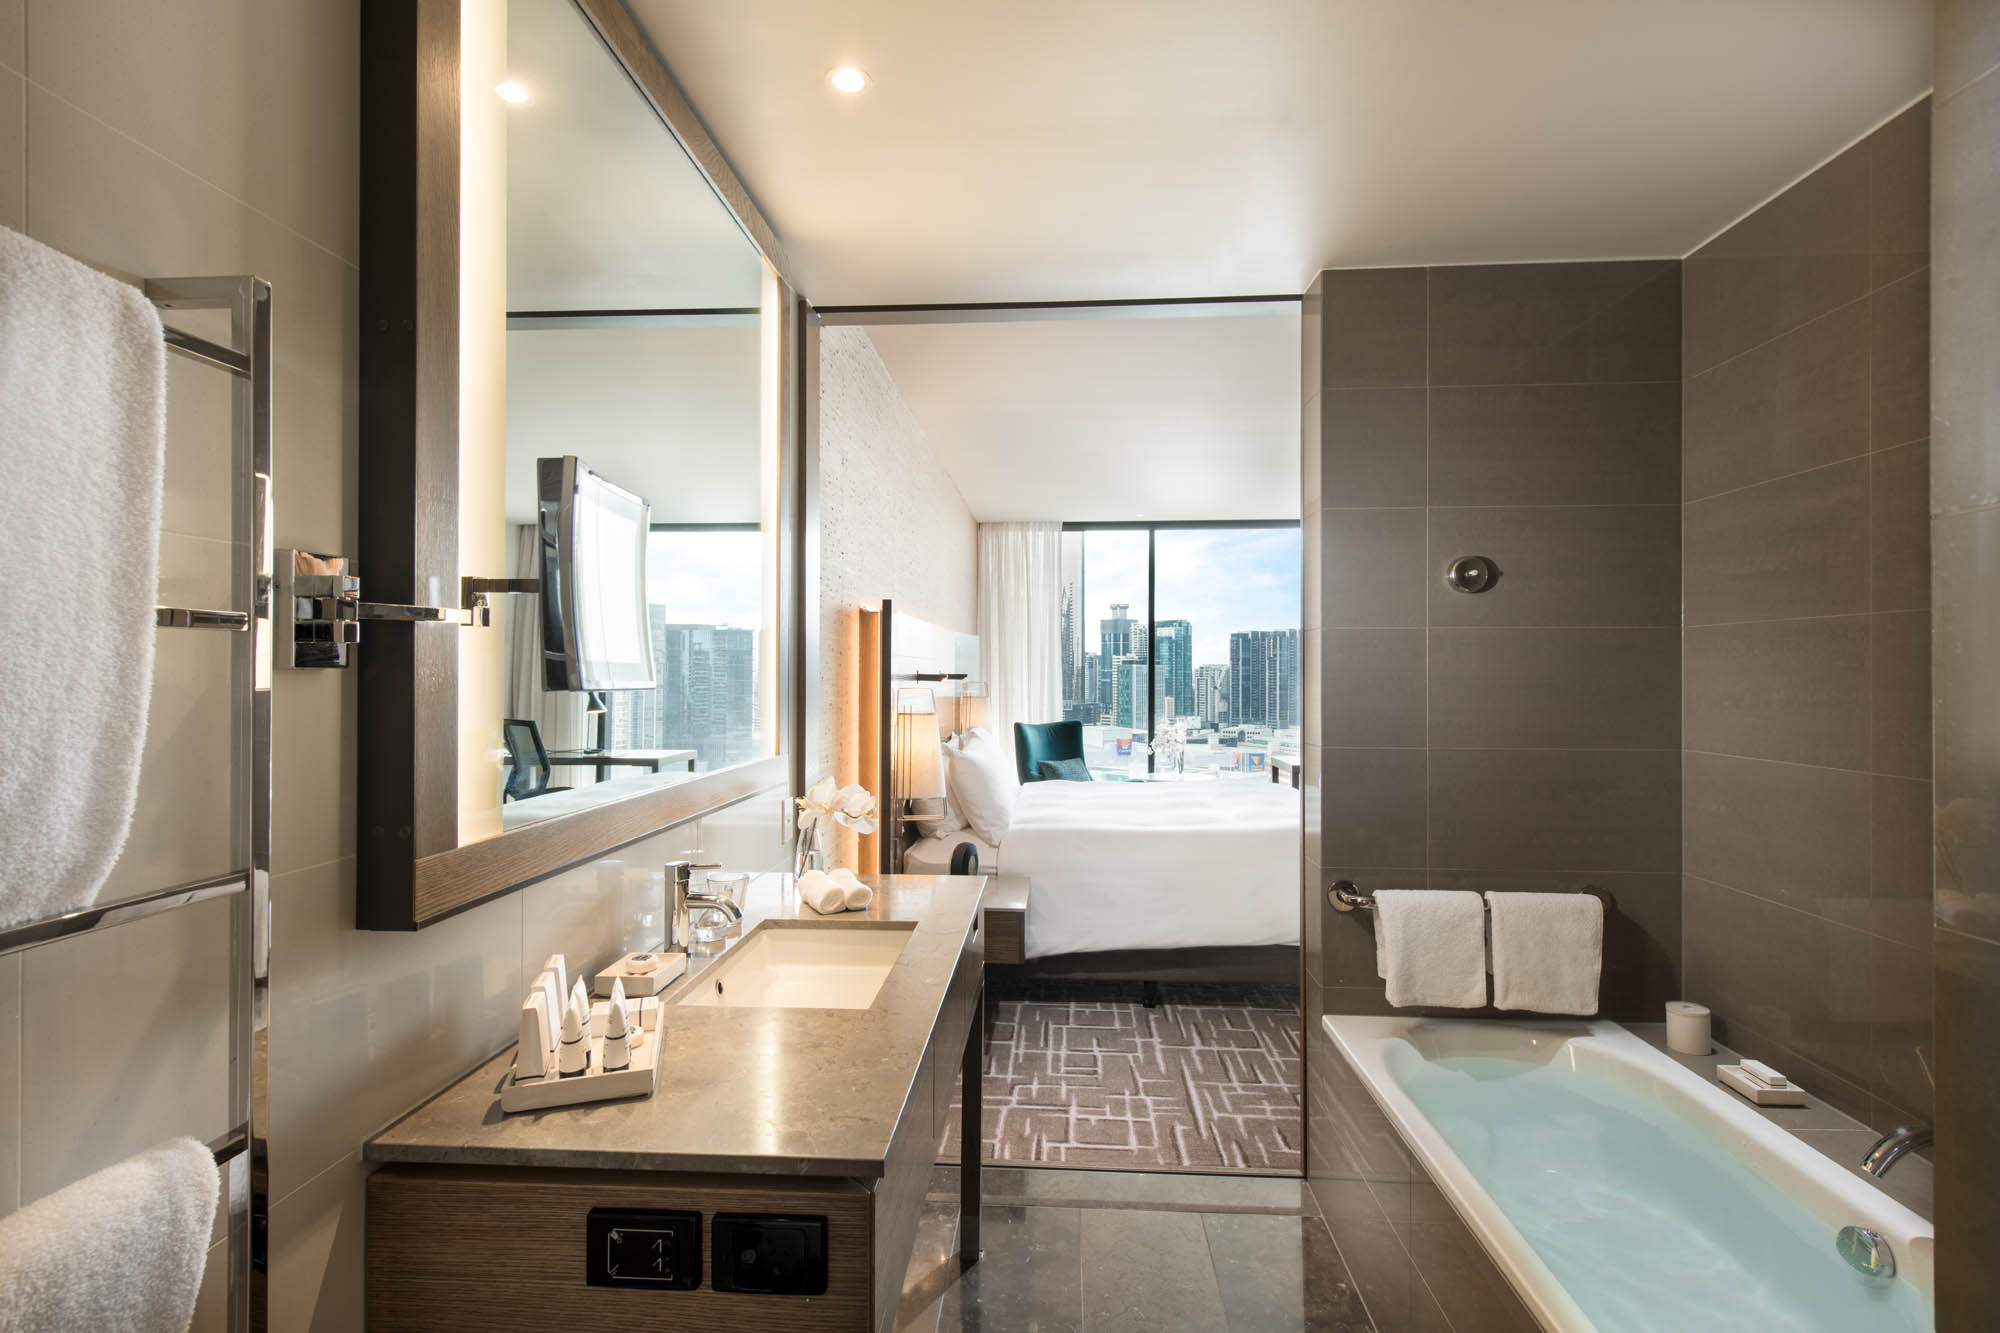 Pan Pacific Hotel Melbourne Bathroom with City View